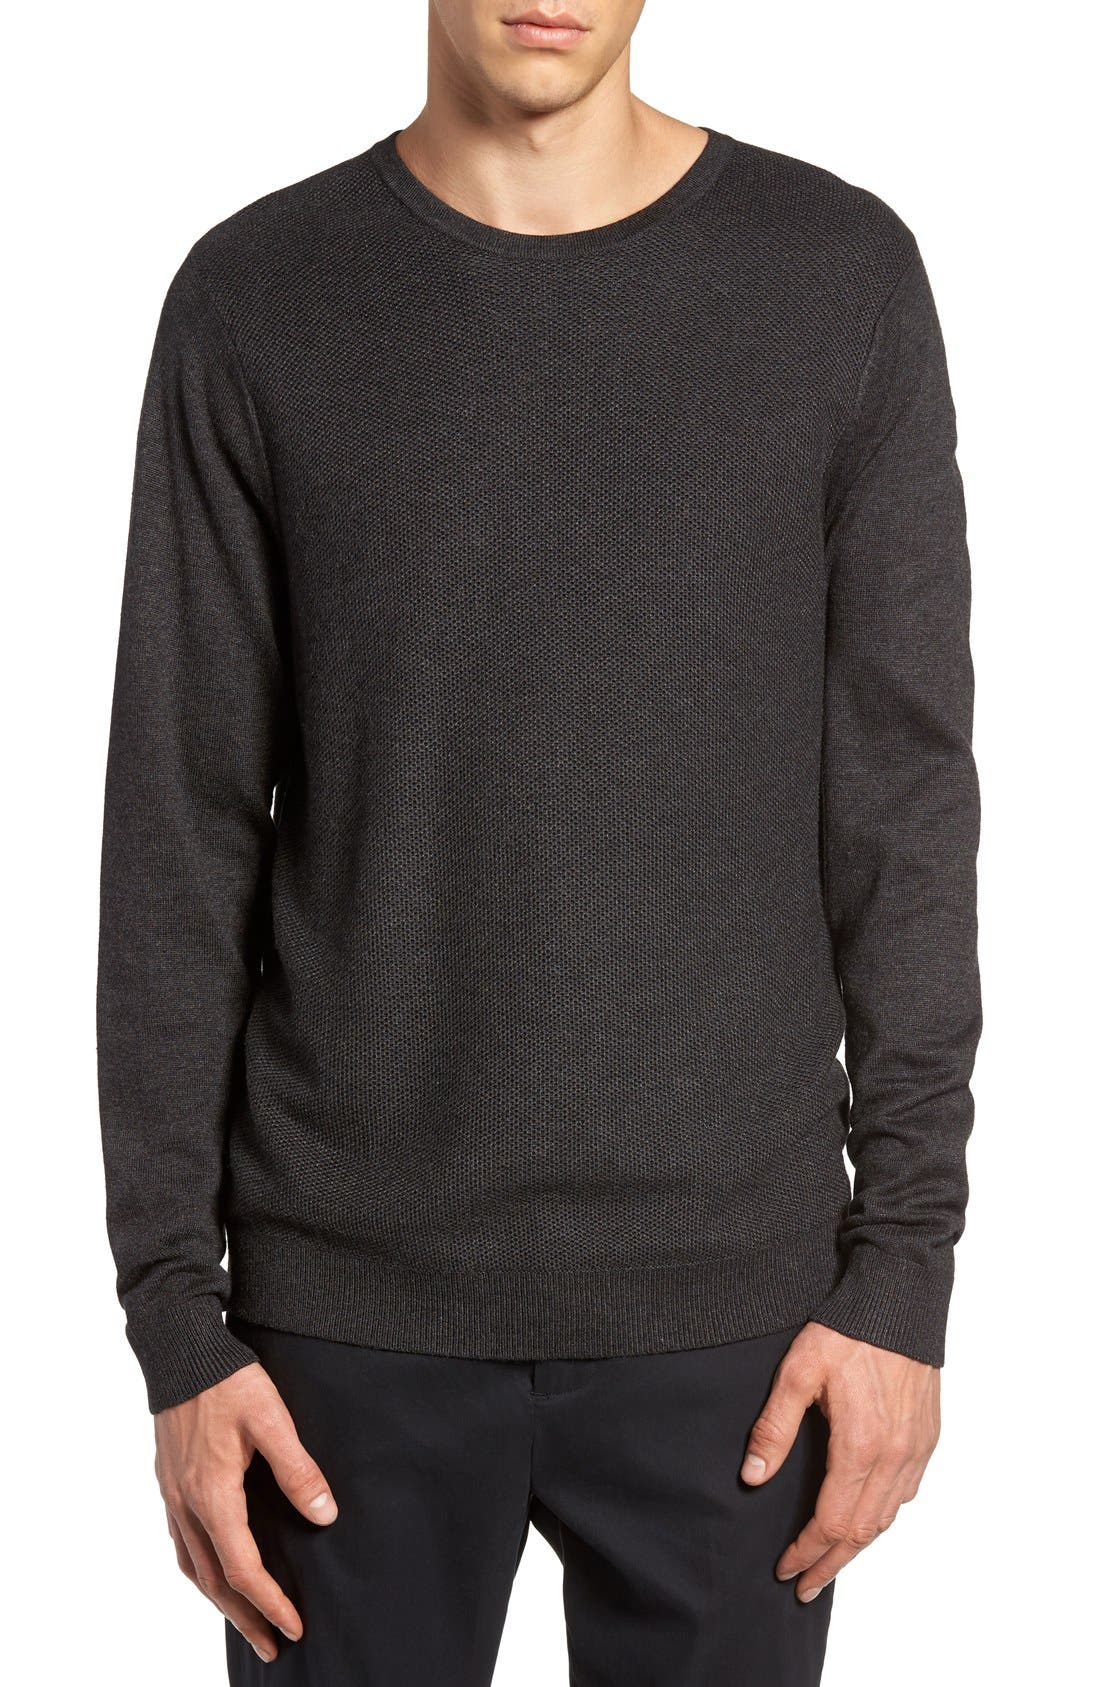 Honeycomb Stitch Crewneck Sweater,                         Main,                         color, Grey Dark Charcoal Heather